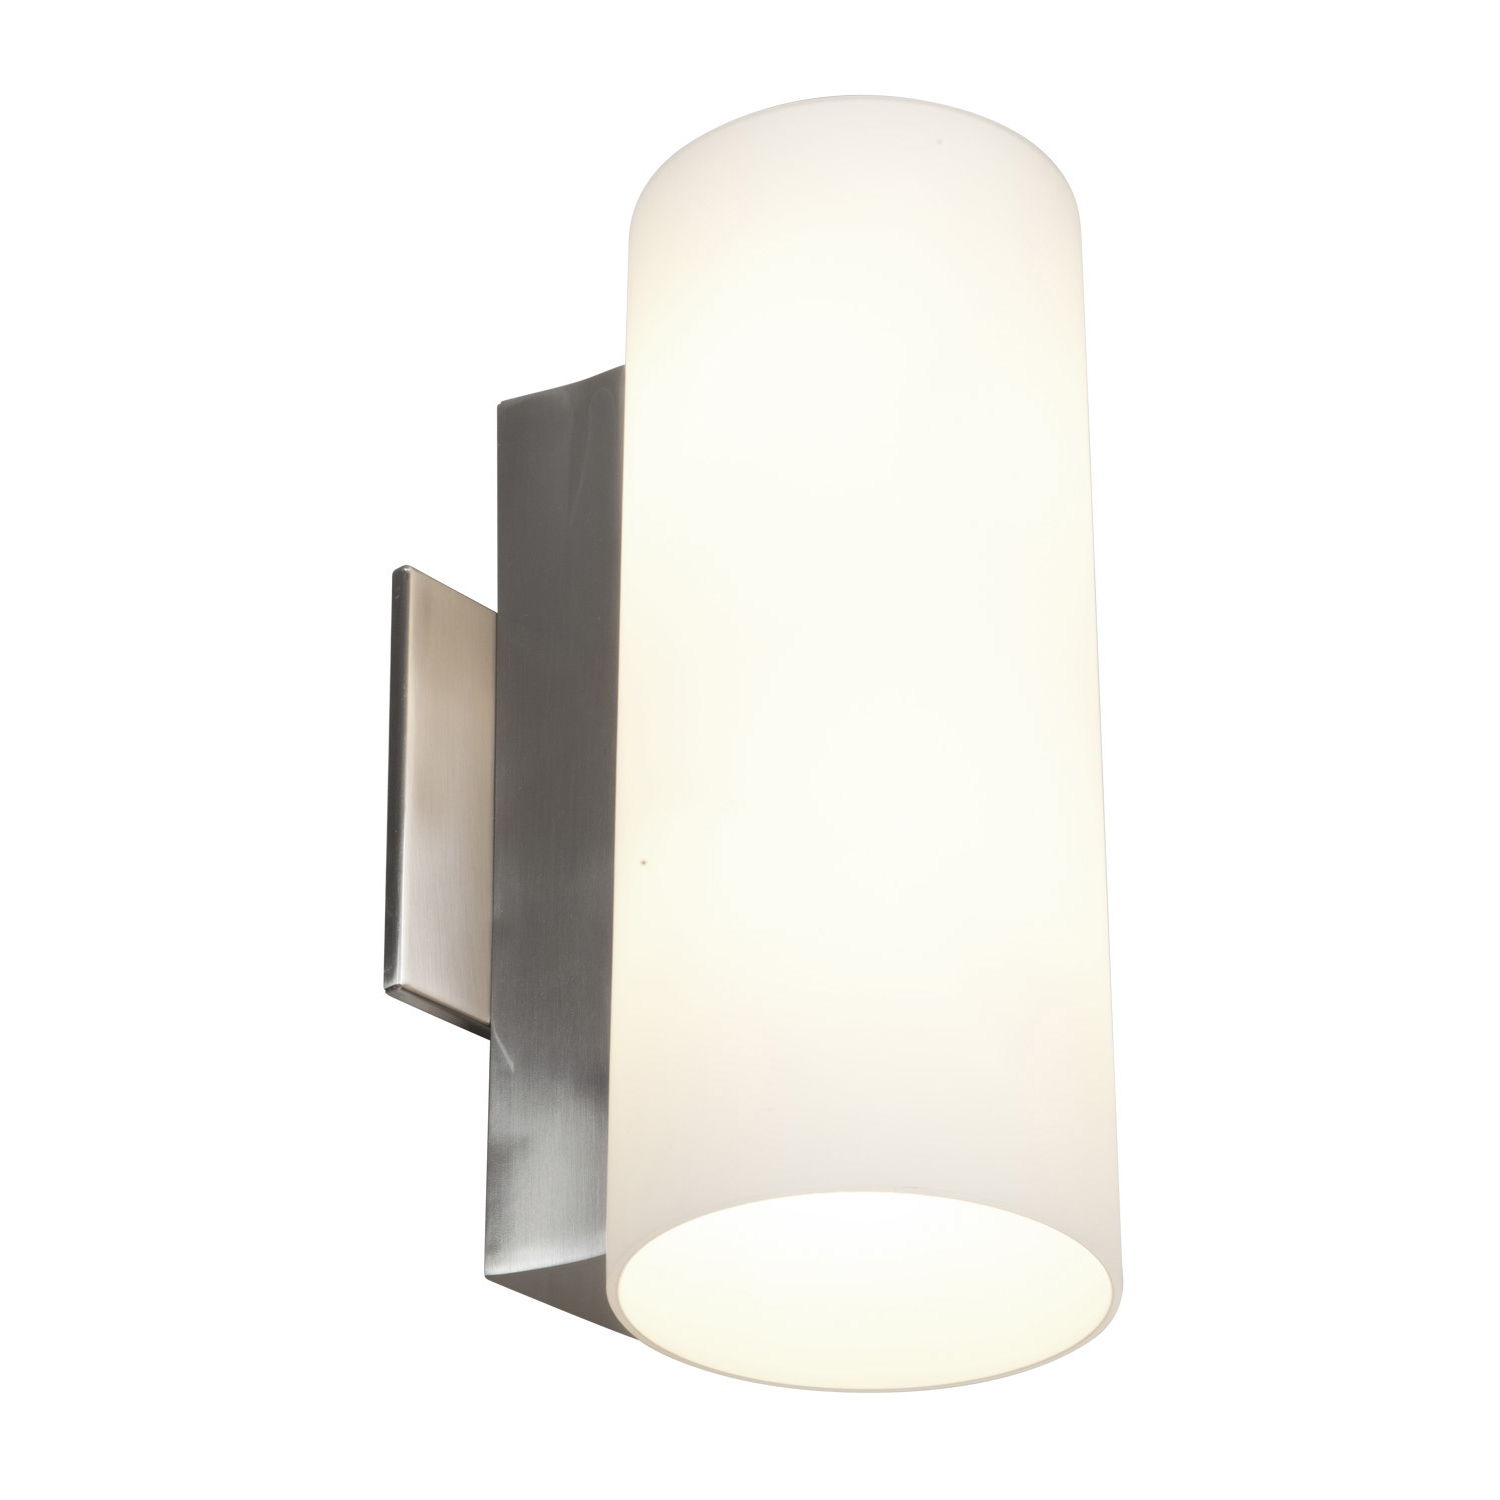 modern wall light fixtures 16 tips for selecting the ForContemporary Wall Light Fixtures